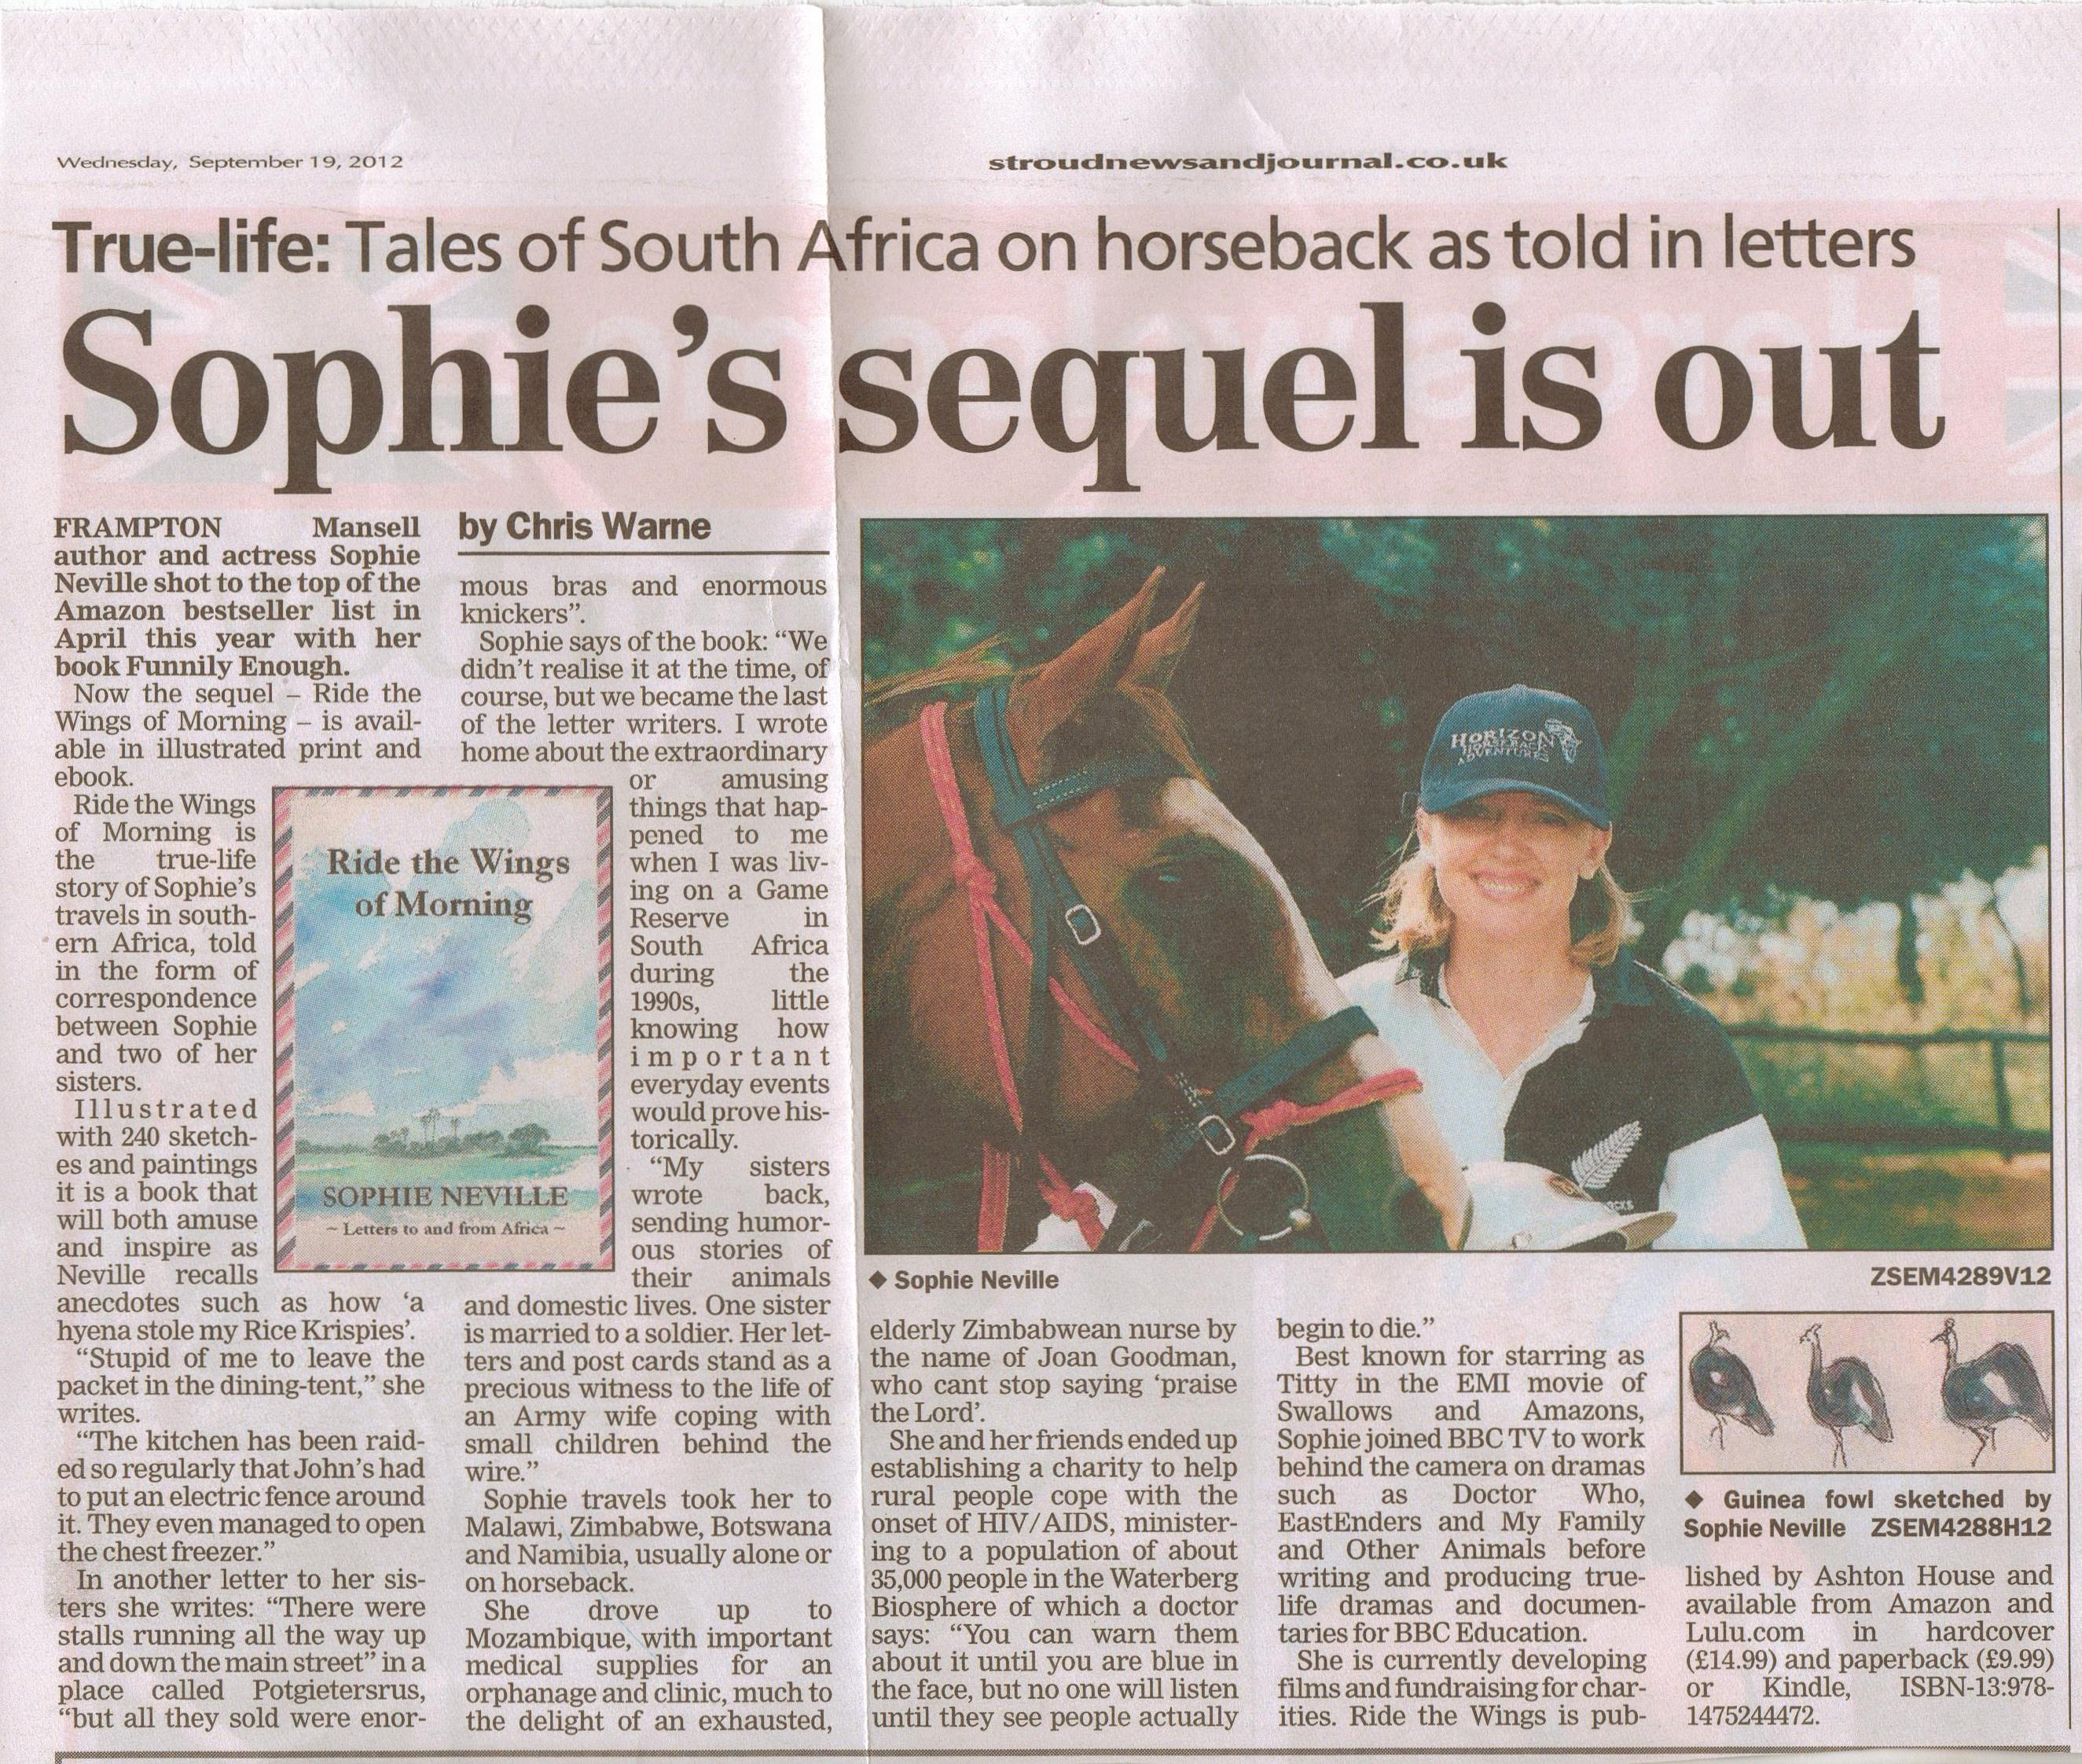 A book review of 'Ride the Wings of Morning' by Sophie Neville